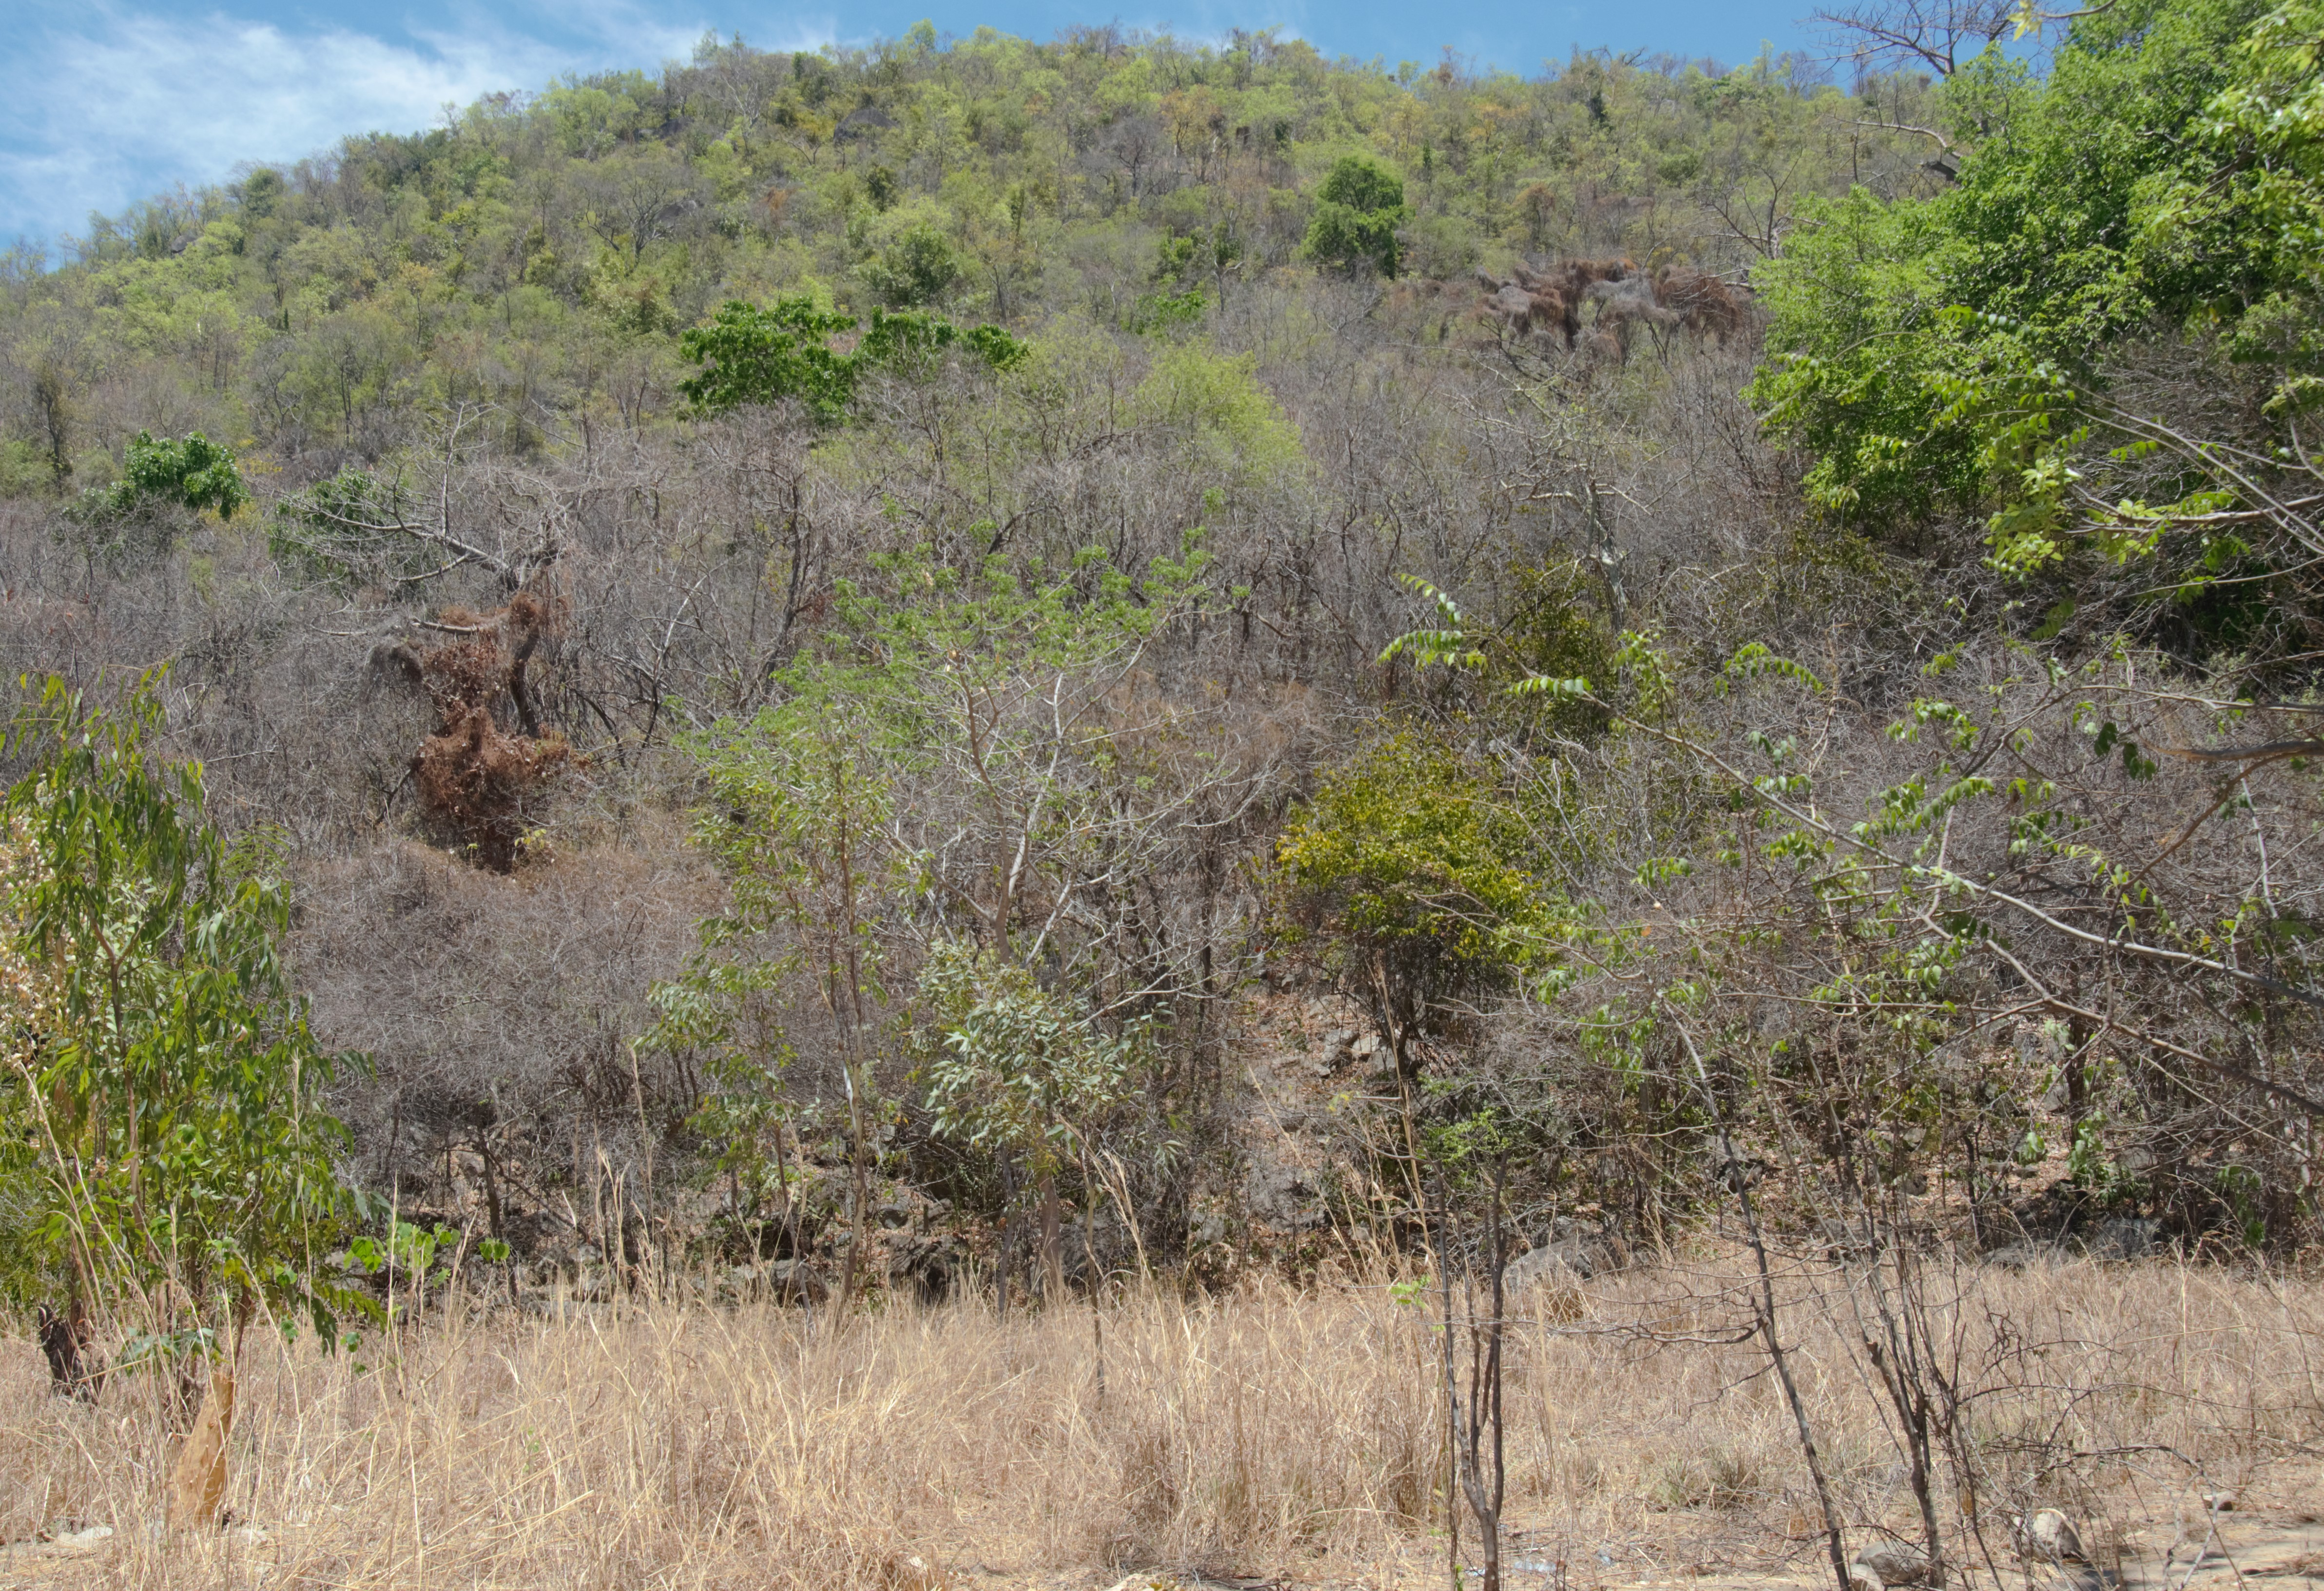 Department of Forestry Engages Communities in Conservation of Forests